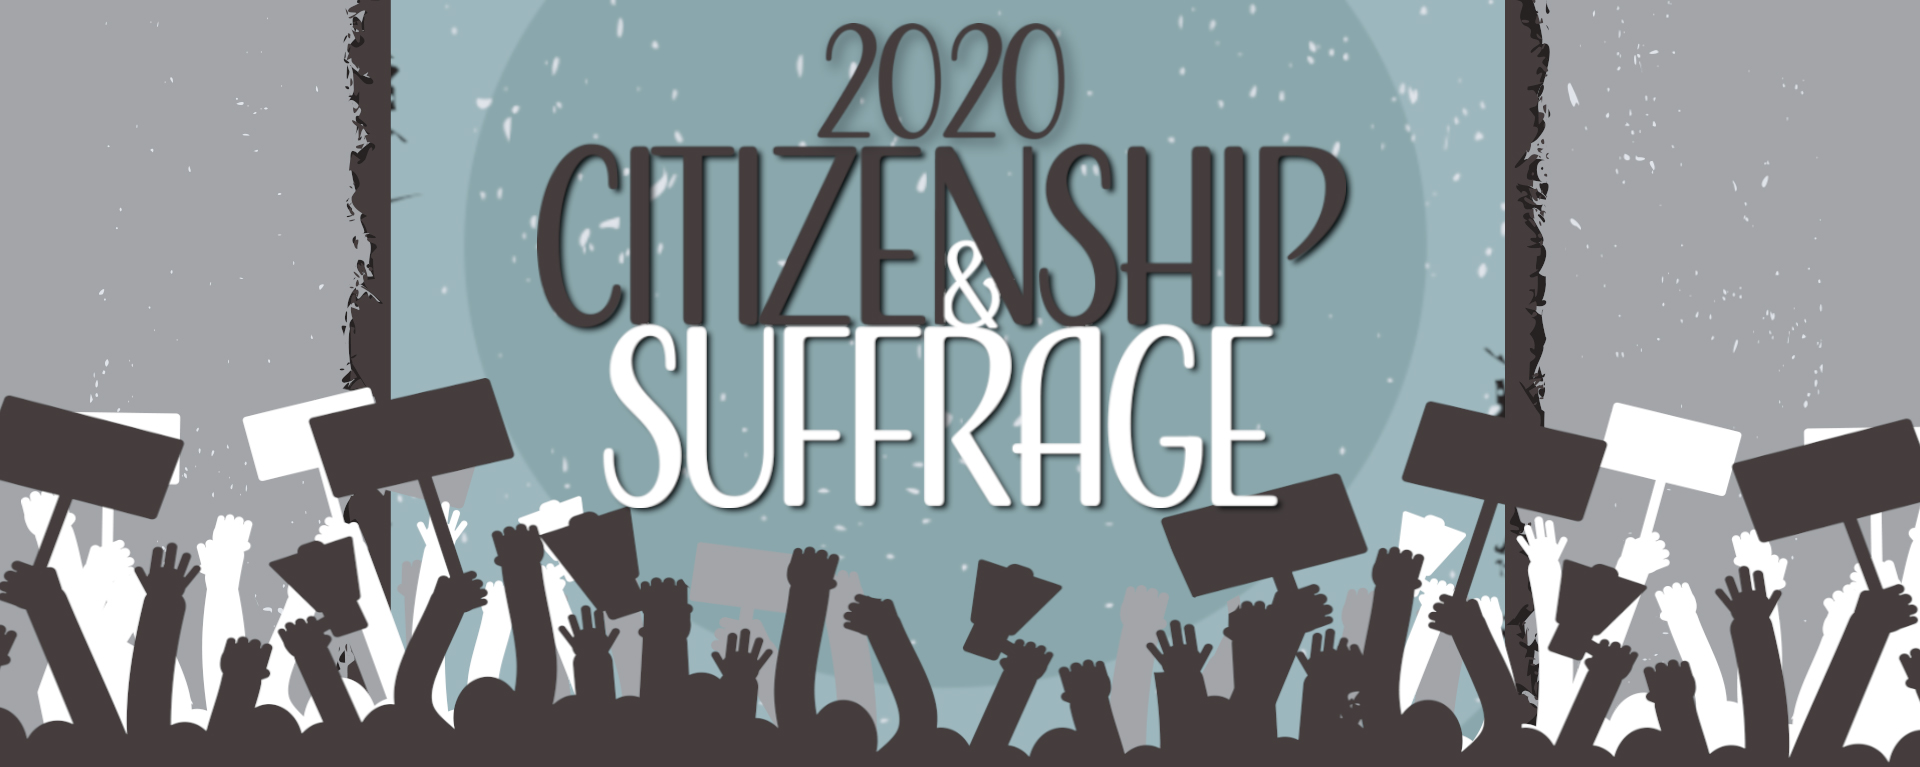 Citizenship and suffrage: WUmester 2020